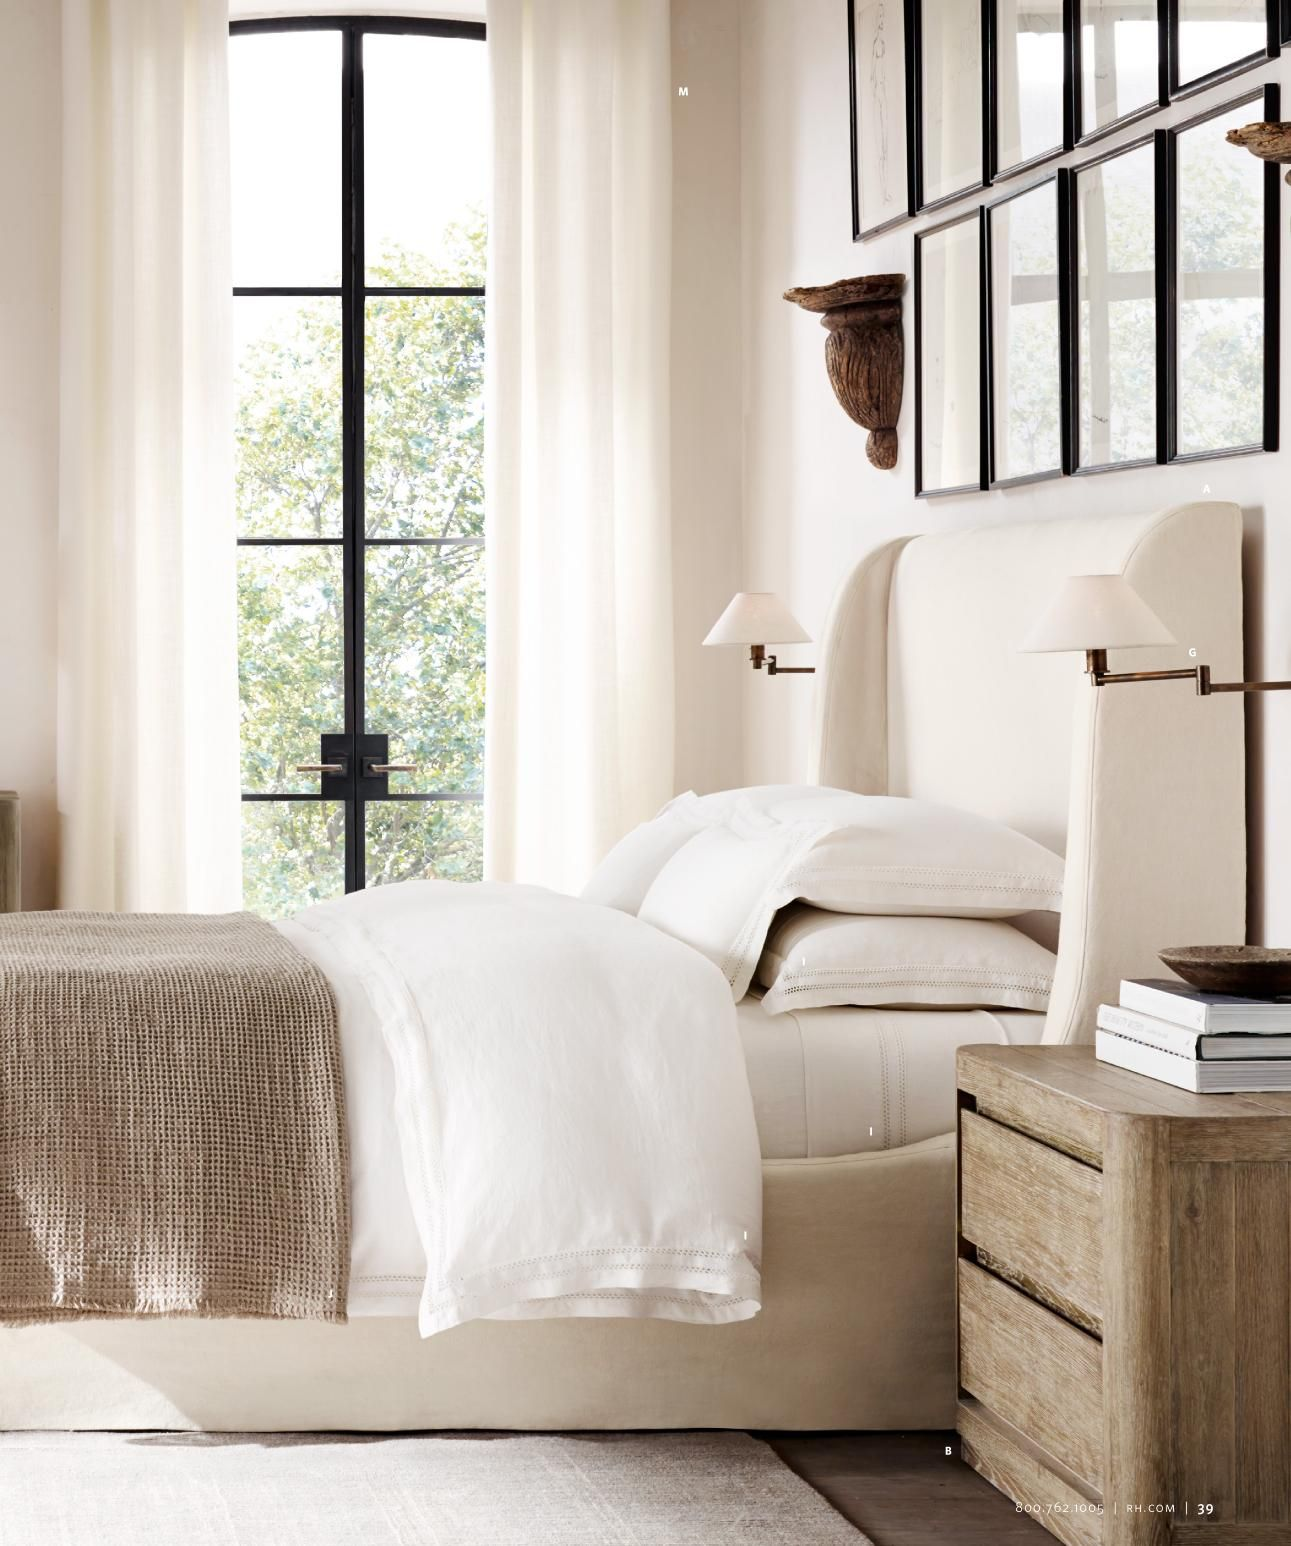 Restoration Hardware Has 2 New Catalogs Modern And Teens